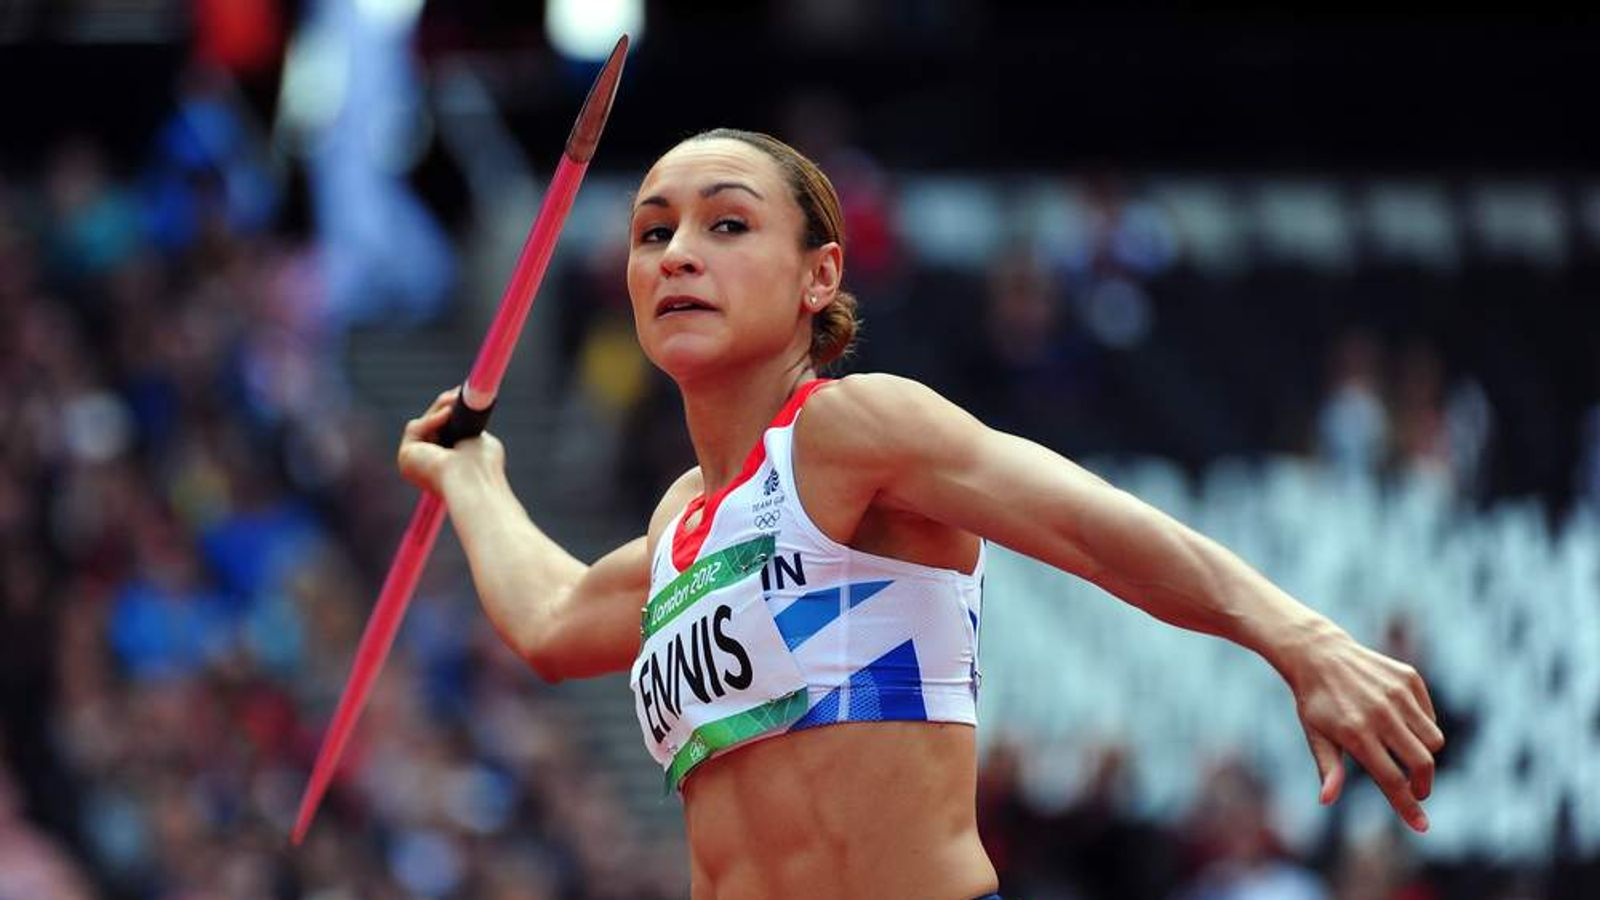 Jessica Ennis of Great Britain competes in the Women's Heptathlon Javelin Throw